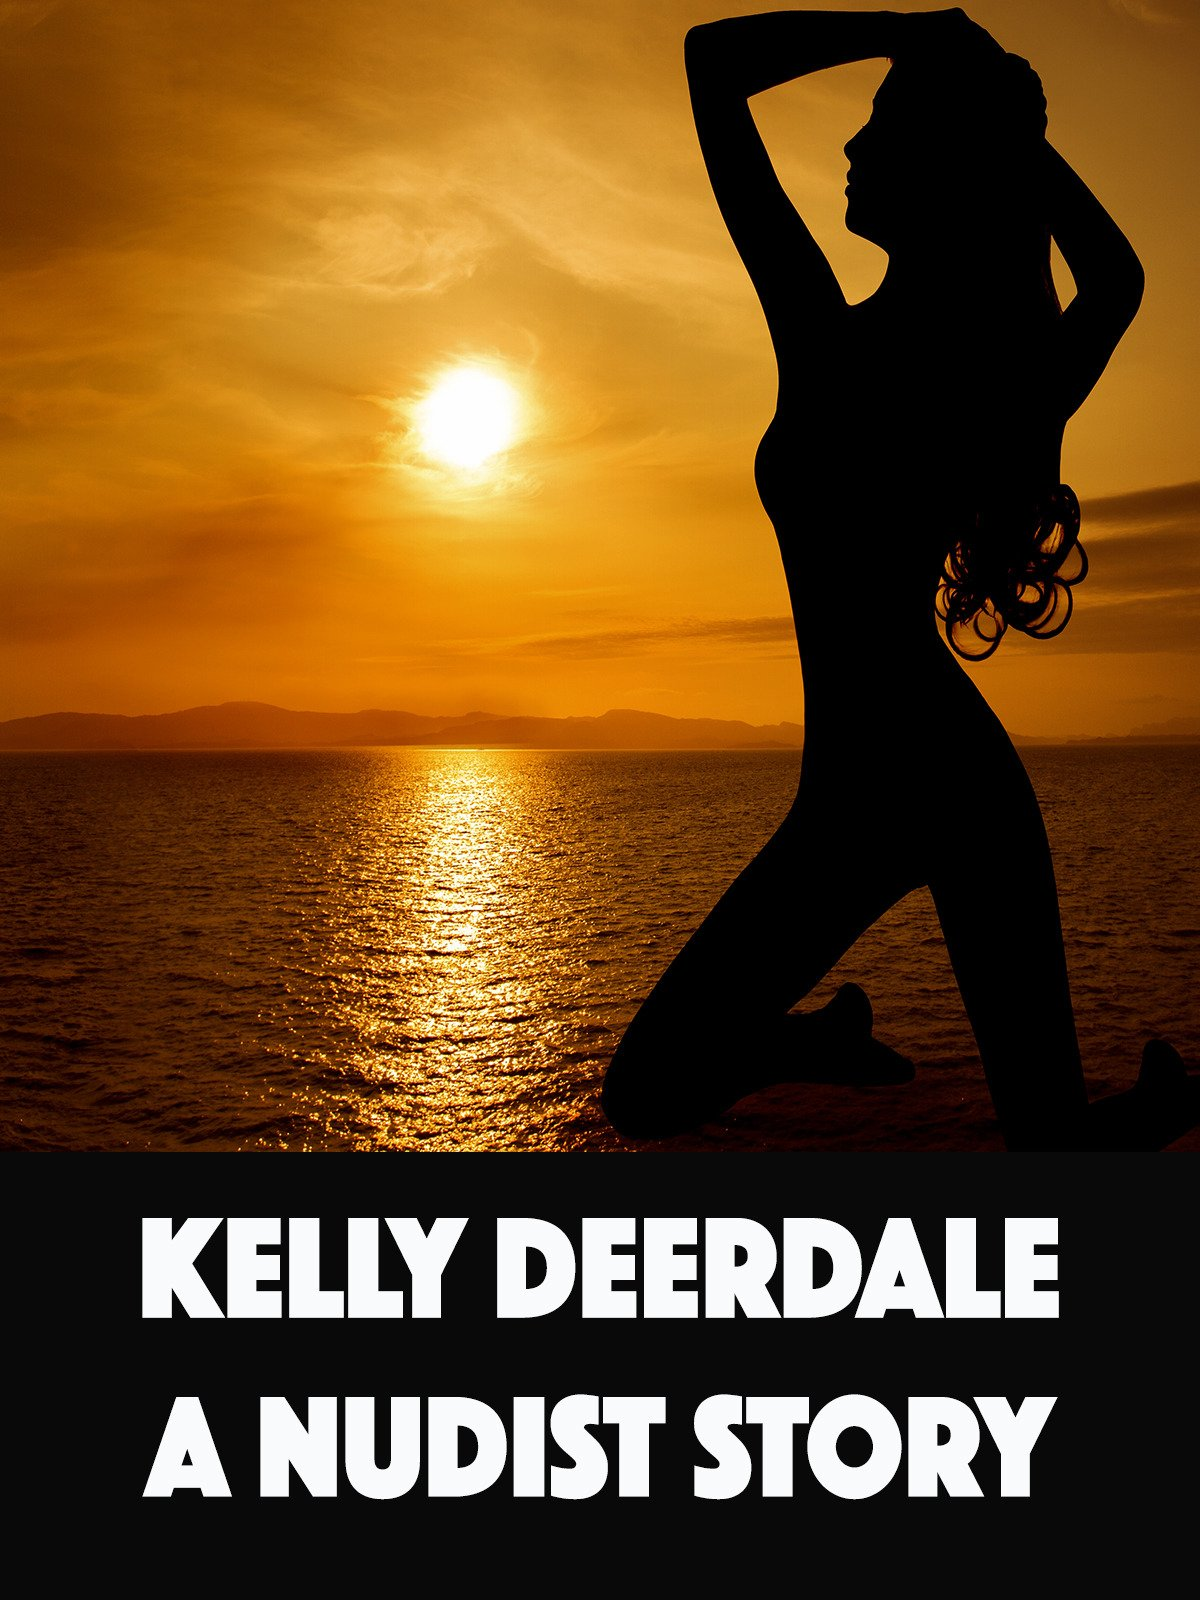 Kelly Deerdale A Nudist Story